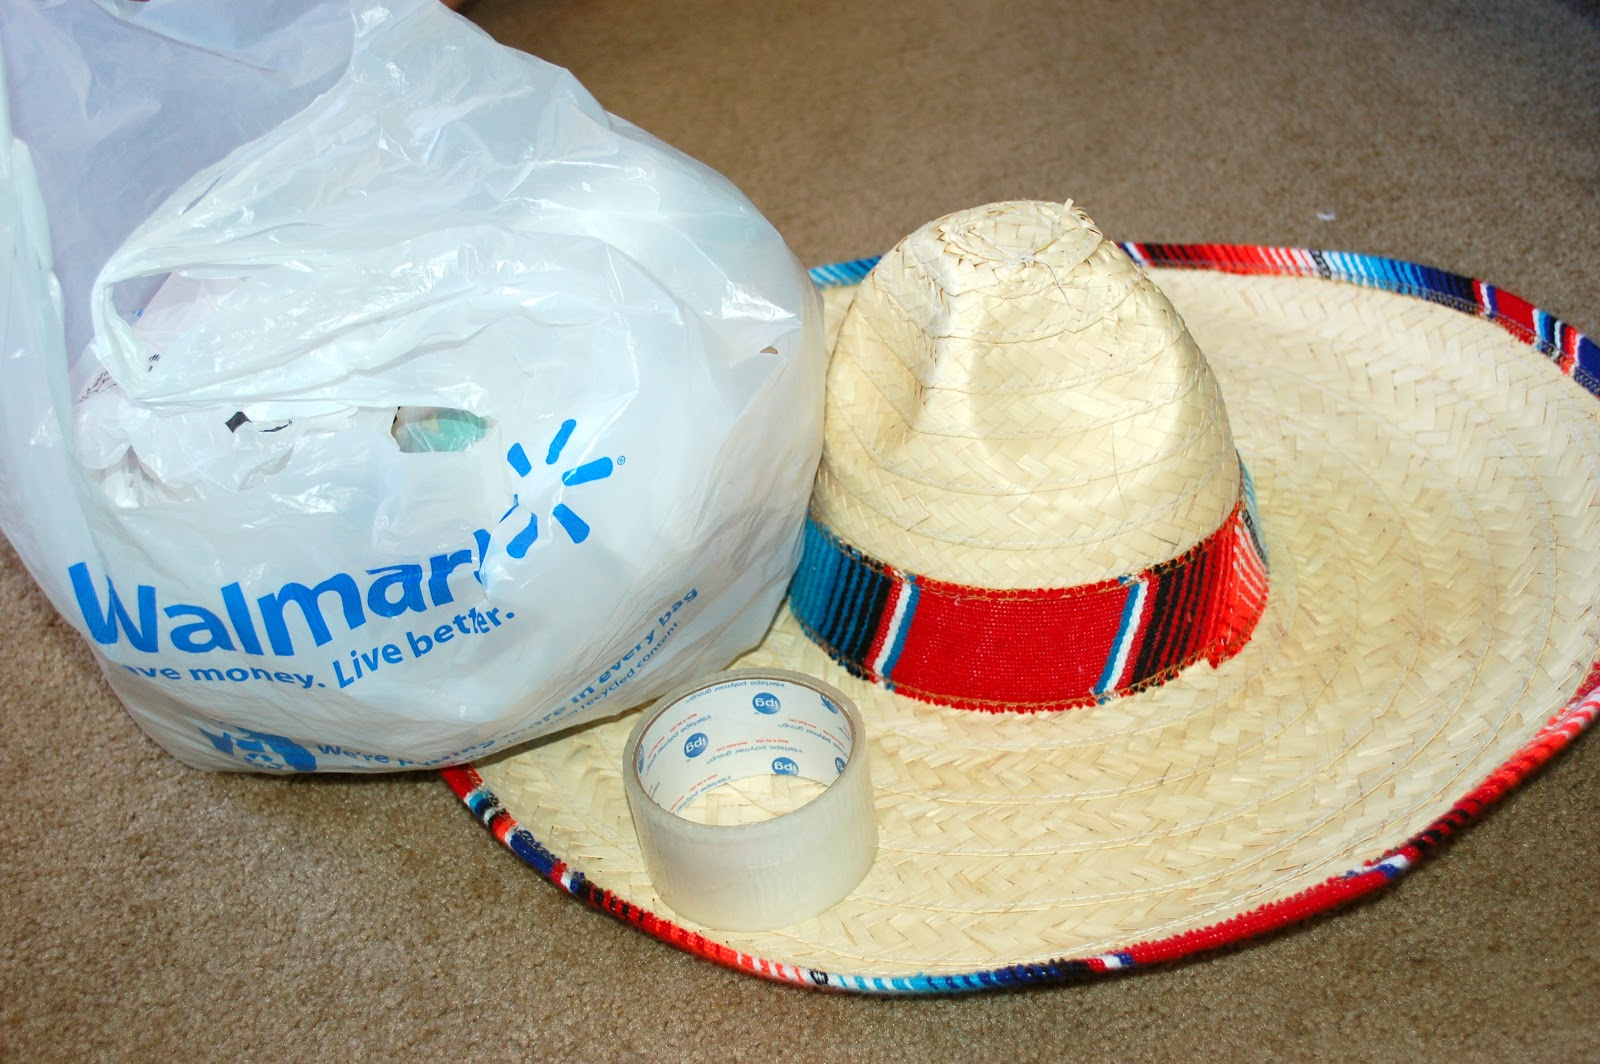 max and i sat around and balled up old grocery bags stuffed them onto the sombrero as tightly as we could